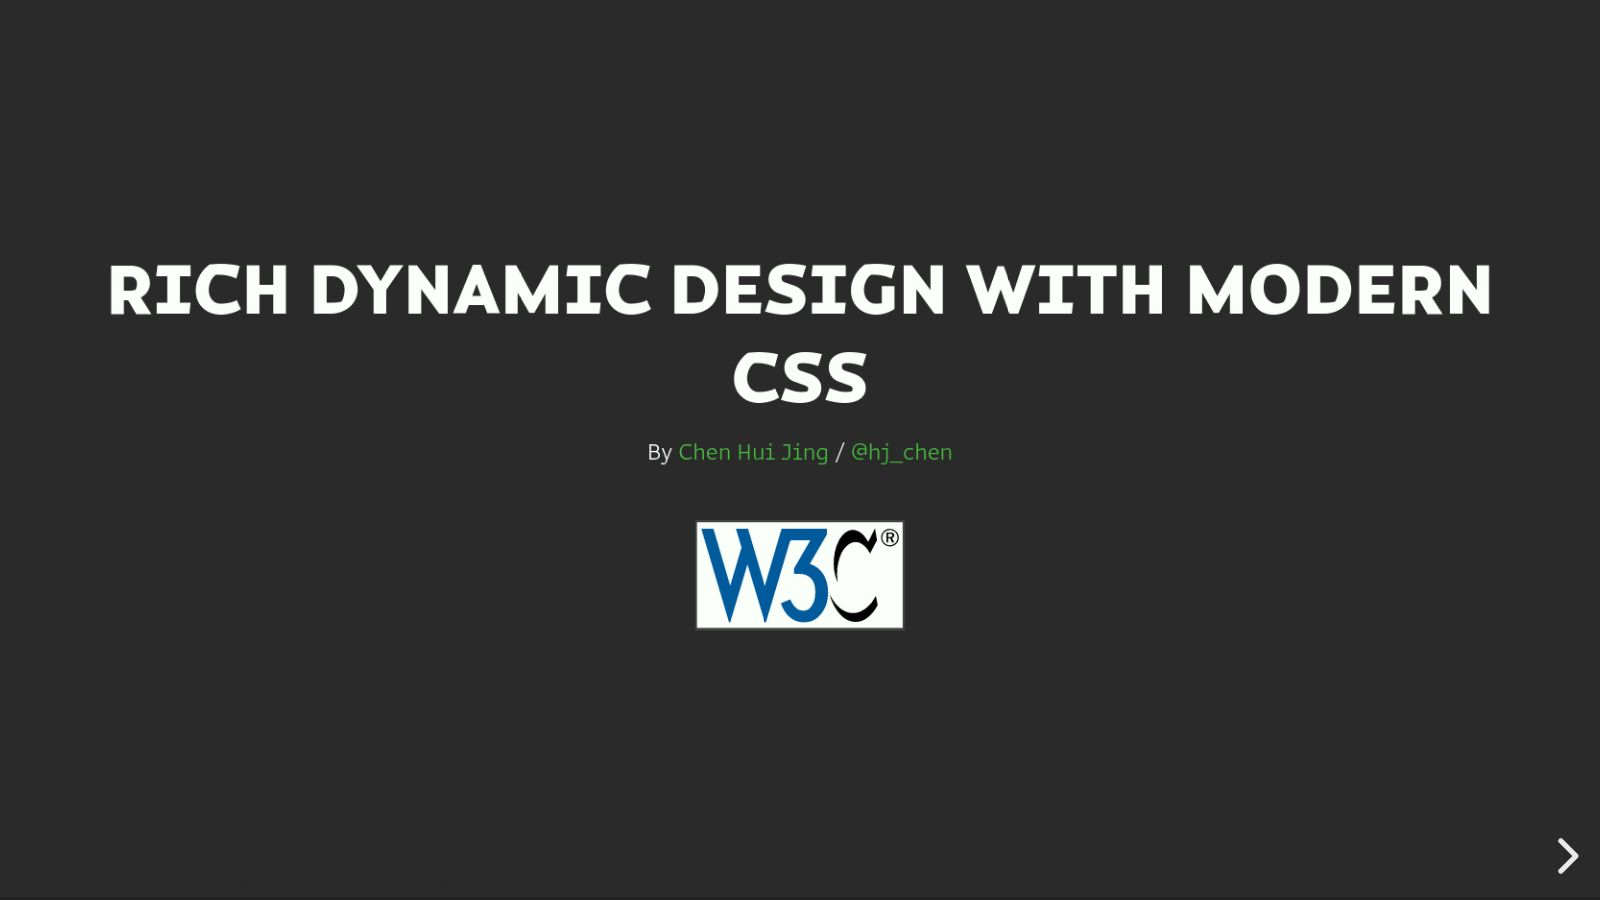 Rich Dynamic Design with Modern CSS